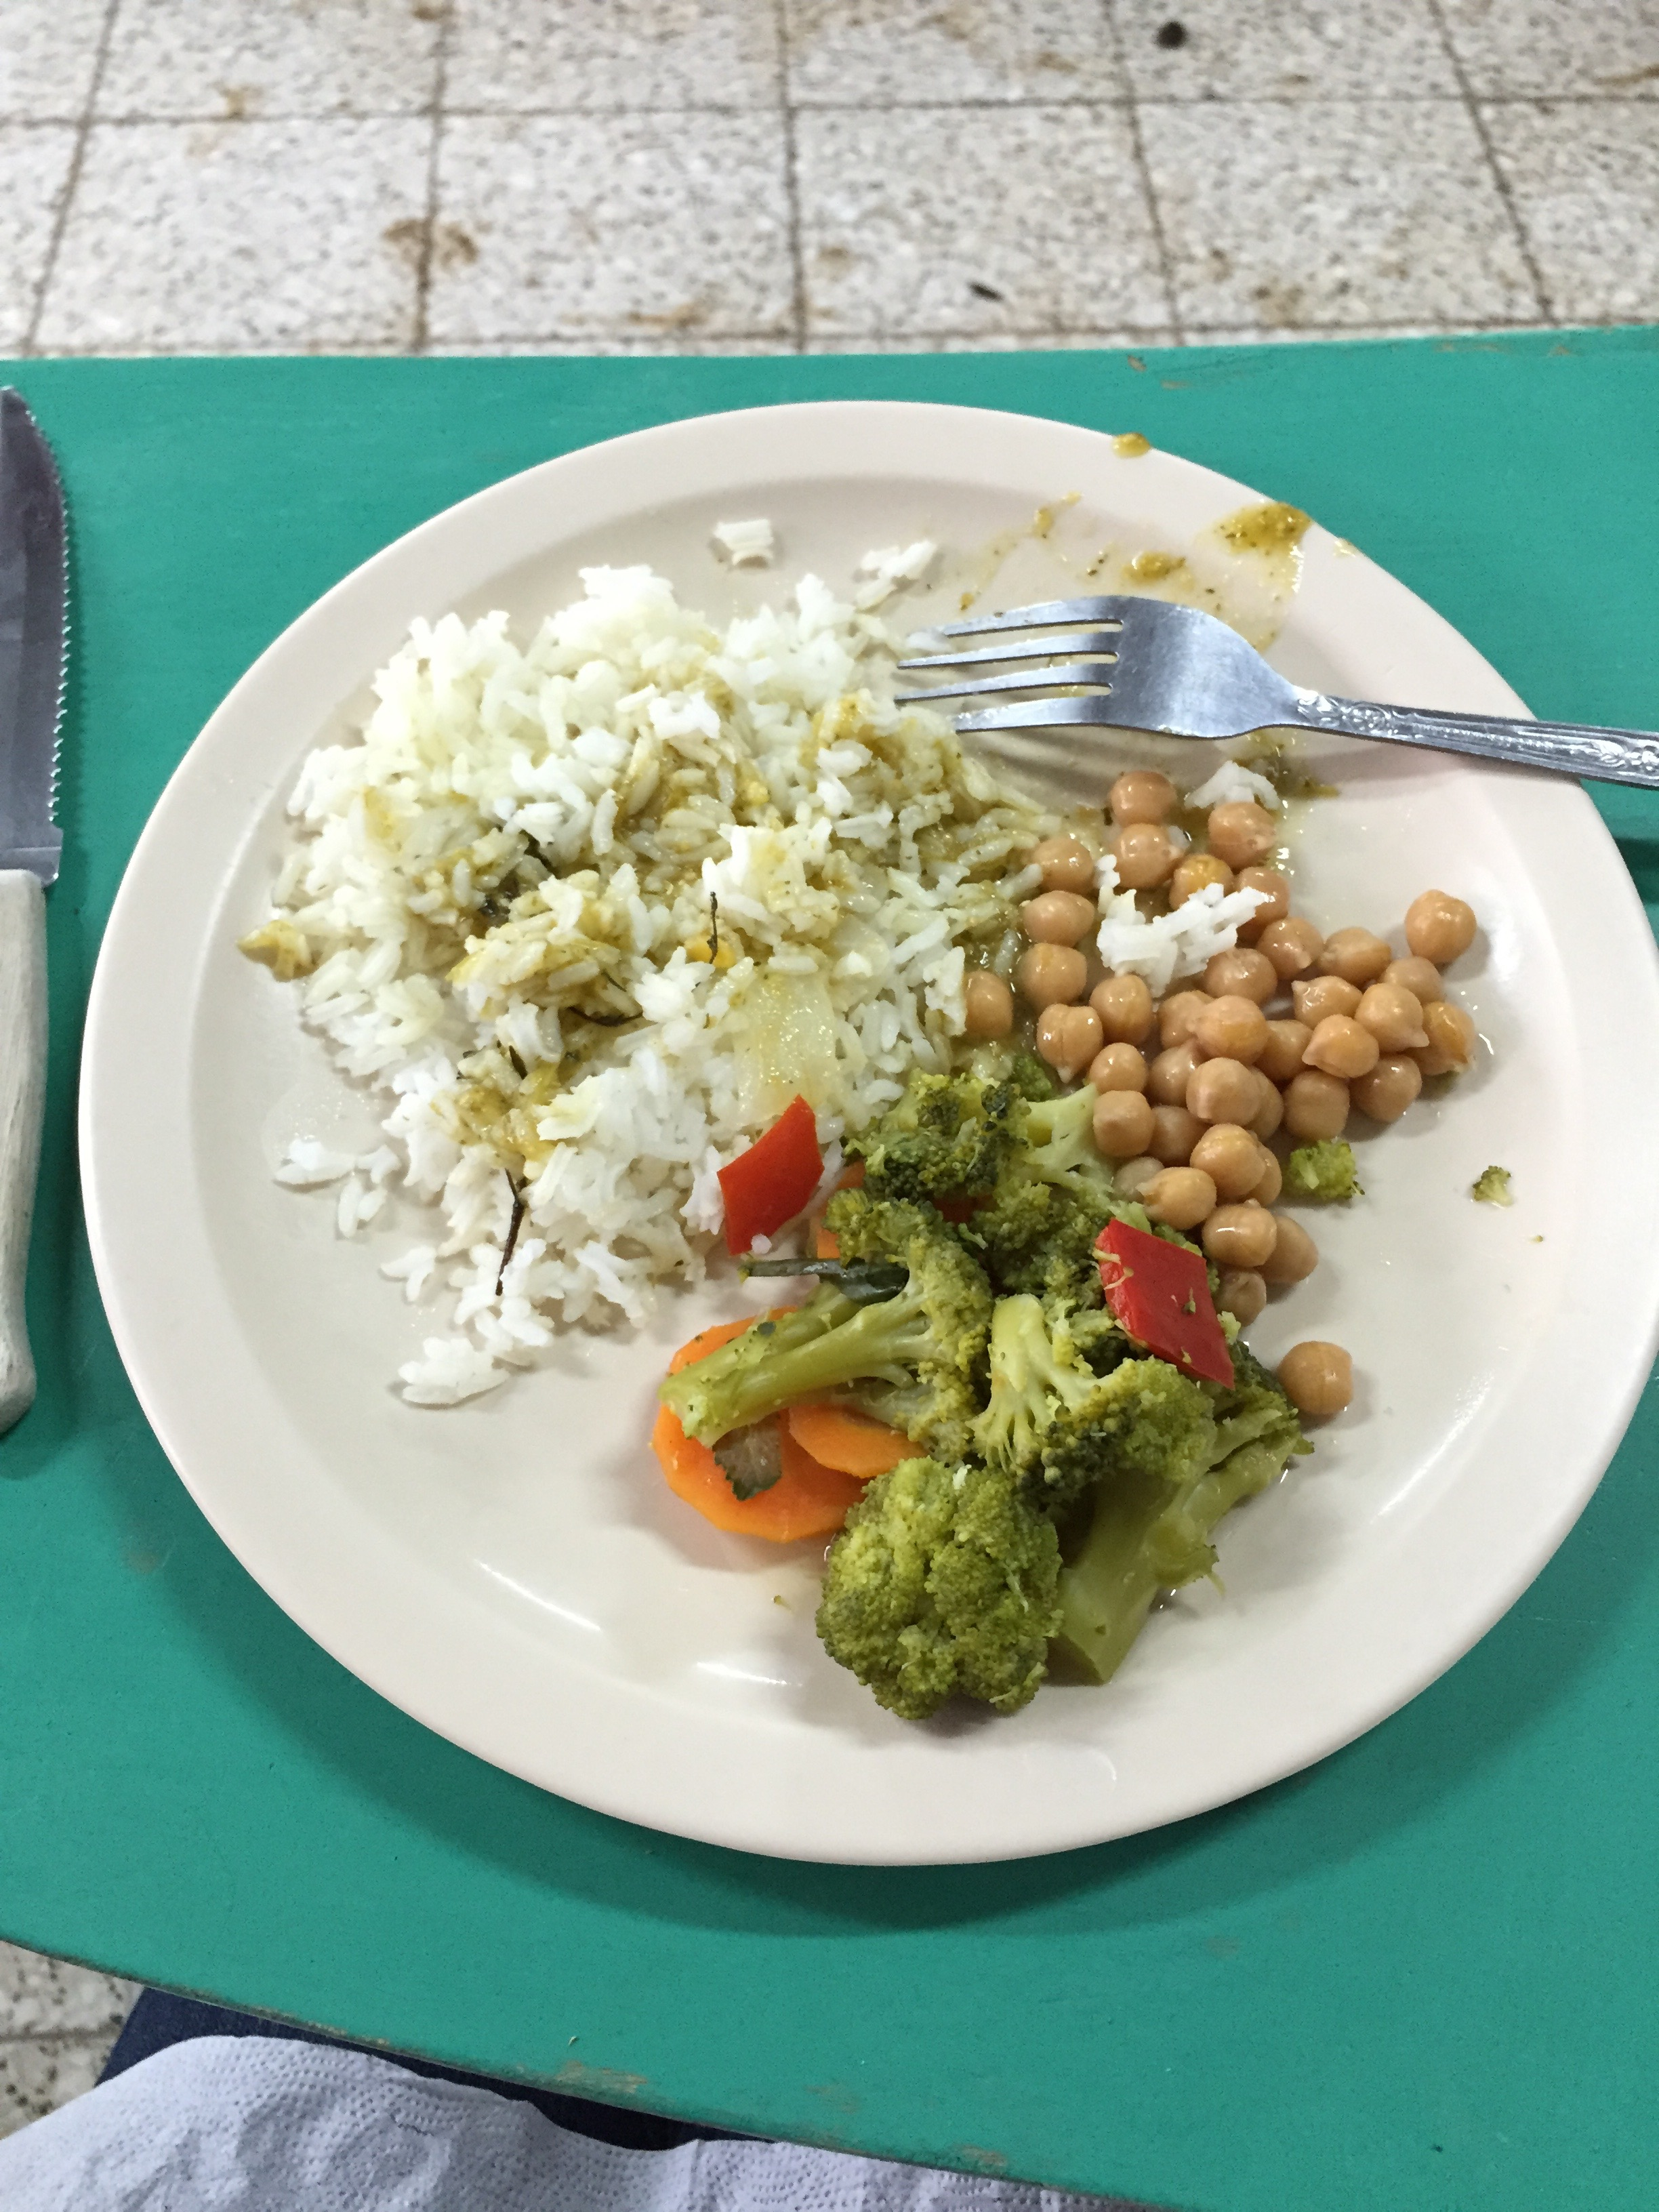 Lunch Cristy brought to the bottle school work site -Chickpeas, rice and veggies with salsa verde